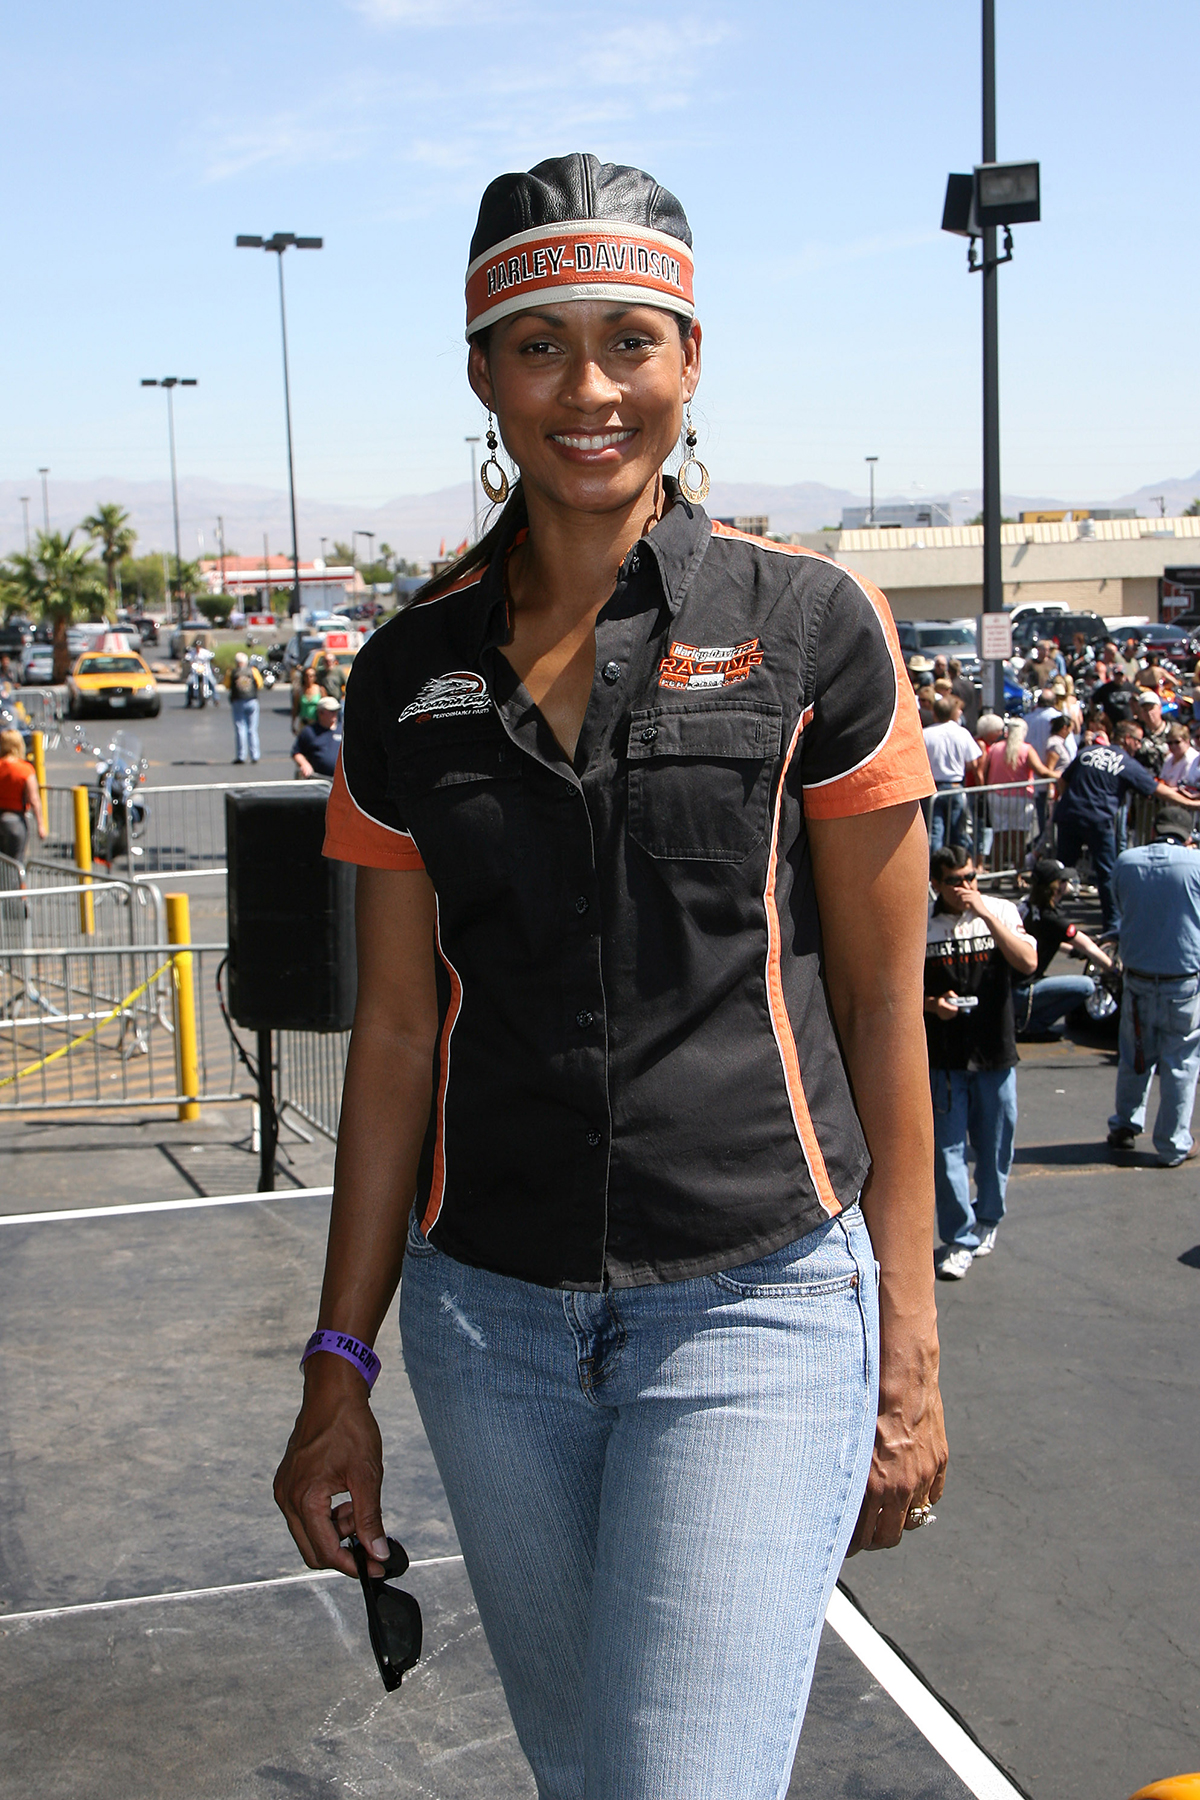 LAS VEGAS - MAY 17: Rhonda Towns prior to the 5th Annual Academy of Country Music Motorcycle Ride benefiting the Academy of Country Music Charitable Fund held at the Las Vegas Harley-Davidson on May 17, 2008 in Las Vegas, Nevada. (Photo by Ethan Miller/Getty Images)